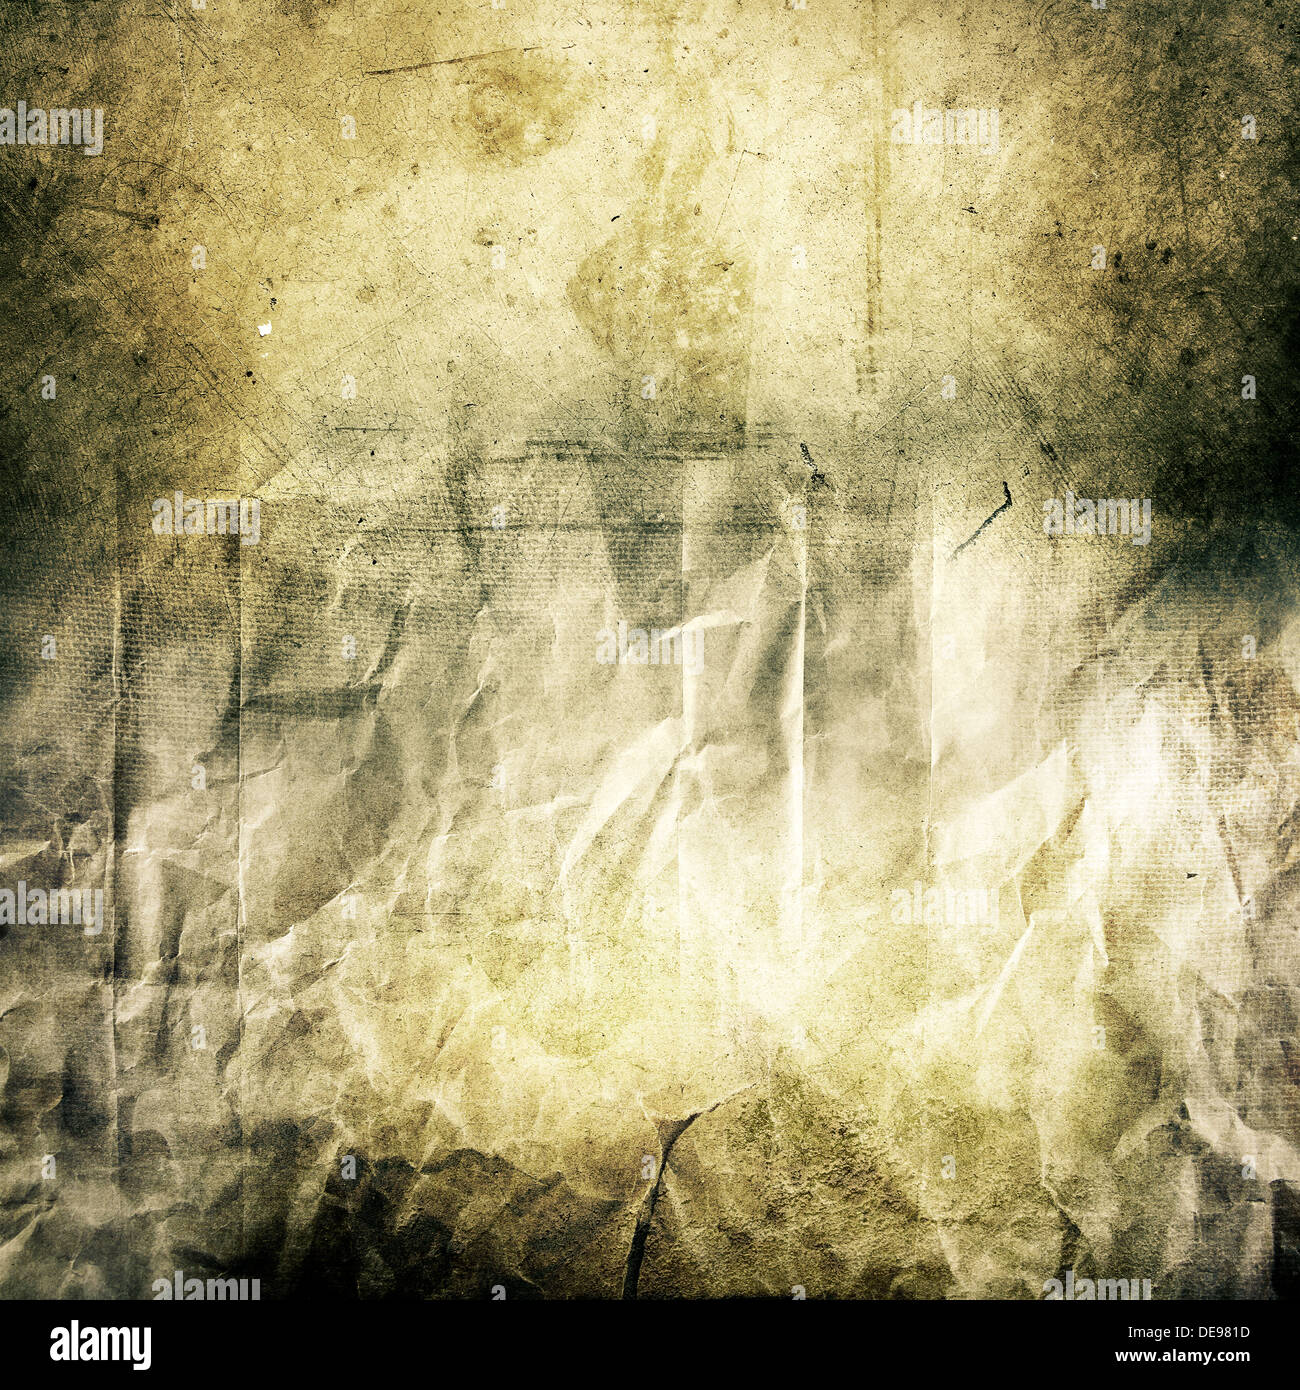 Grungy textured background design element - Stock Image